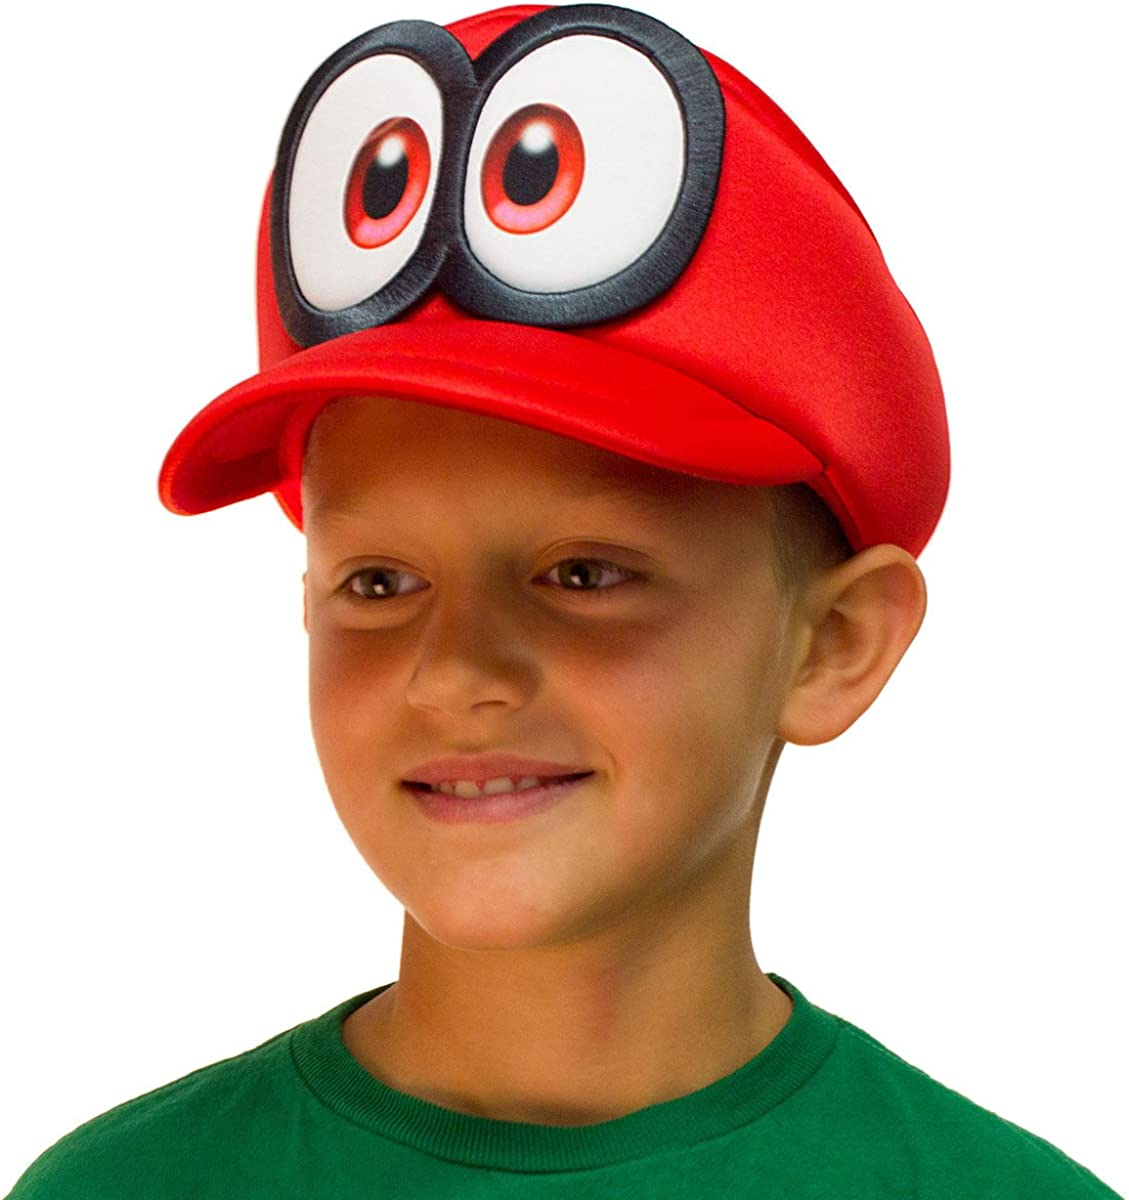 Bioworld Super Mario Odyssey Cappy Hat Kids Cosplay Accessory Red: Clothing